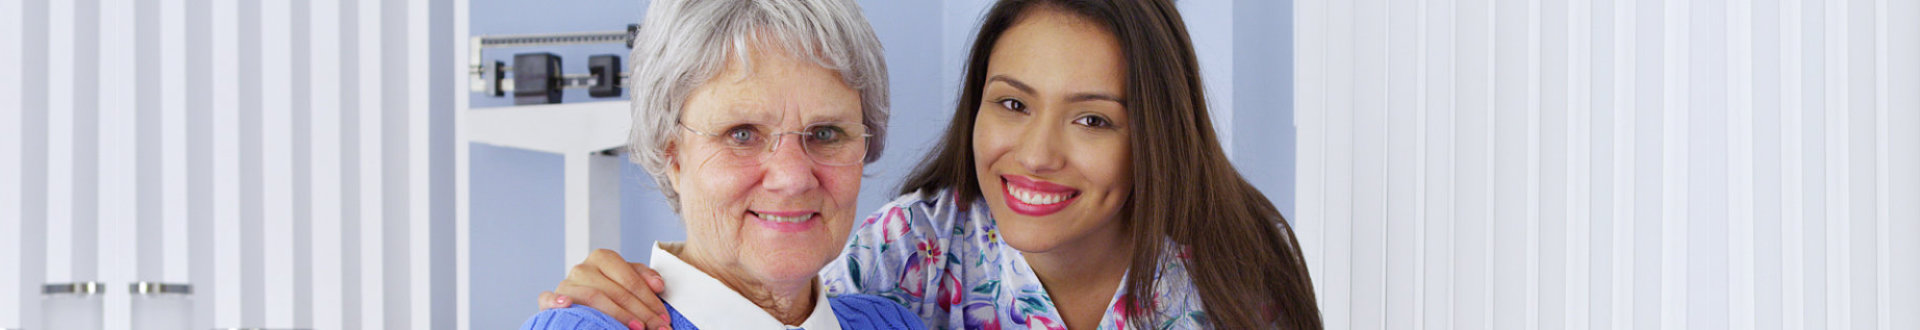 smiling senior woman and caregiver